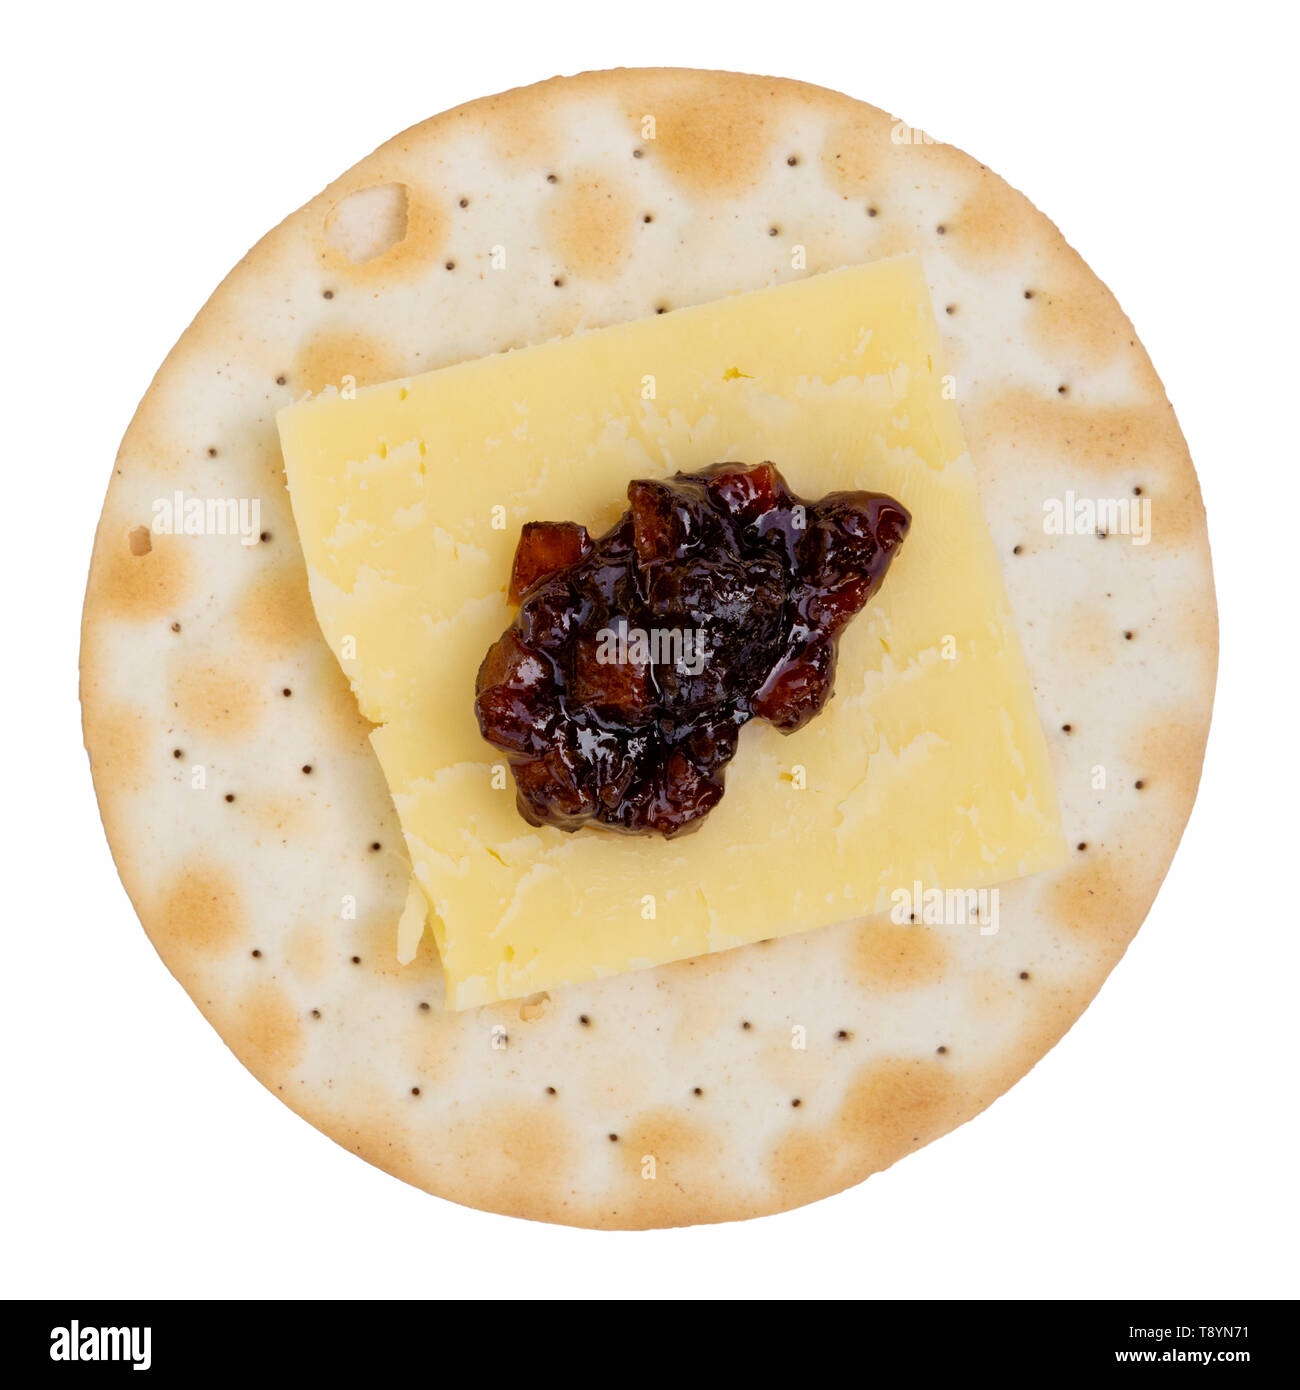 Cheddar cheese & pickle on a round cracker or biscuit, UK. Carrs table water biscuit shot from above and cut out or isolated on a white background. - Stock Image